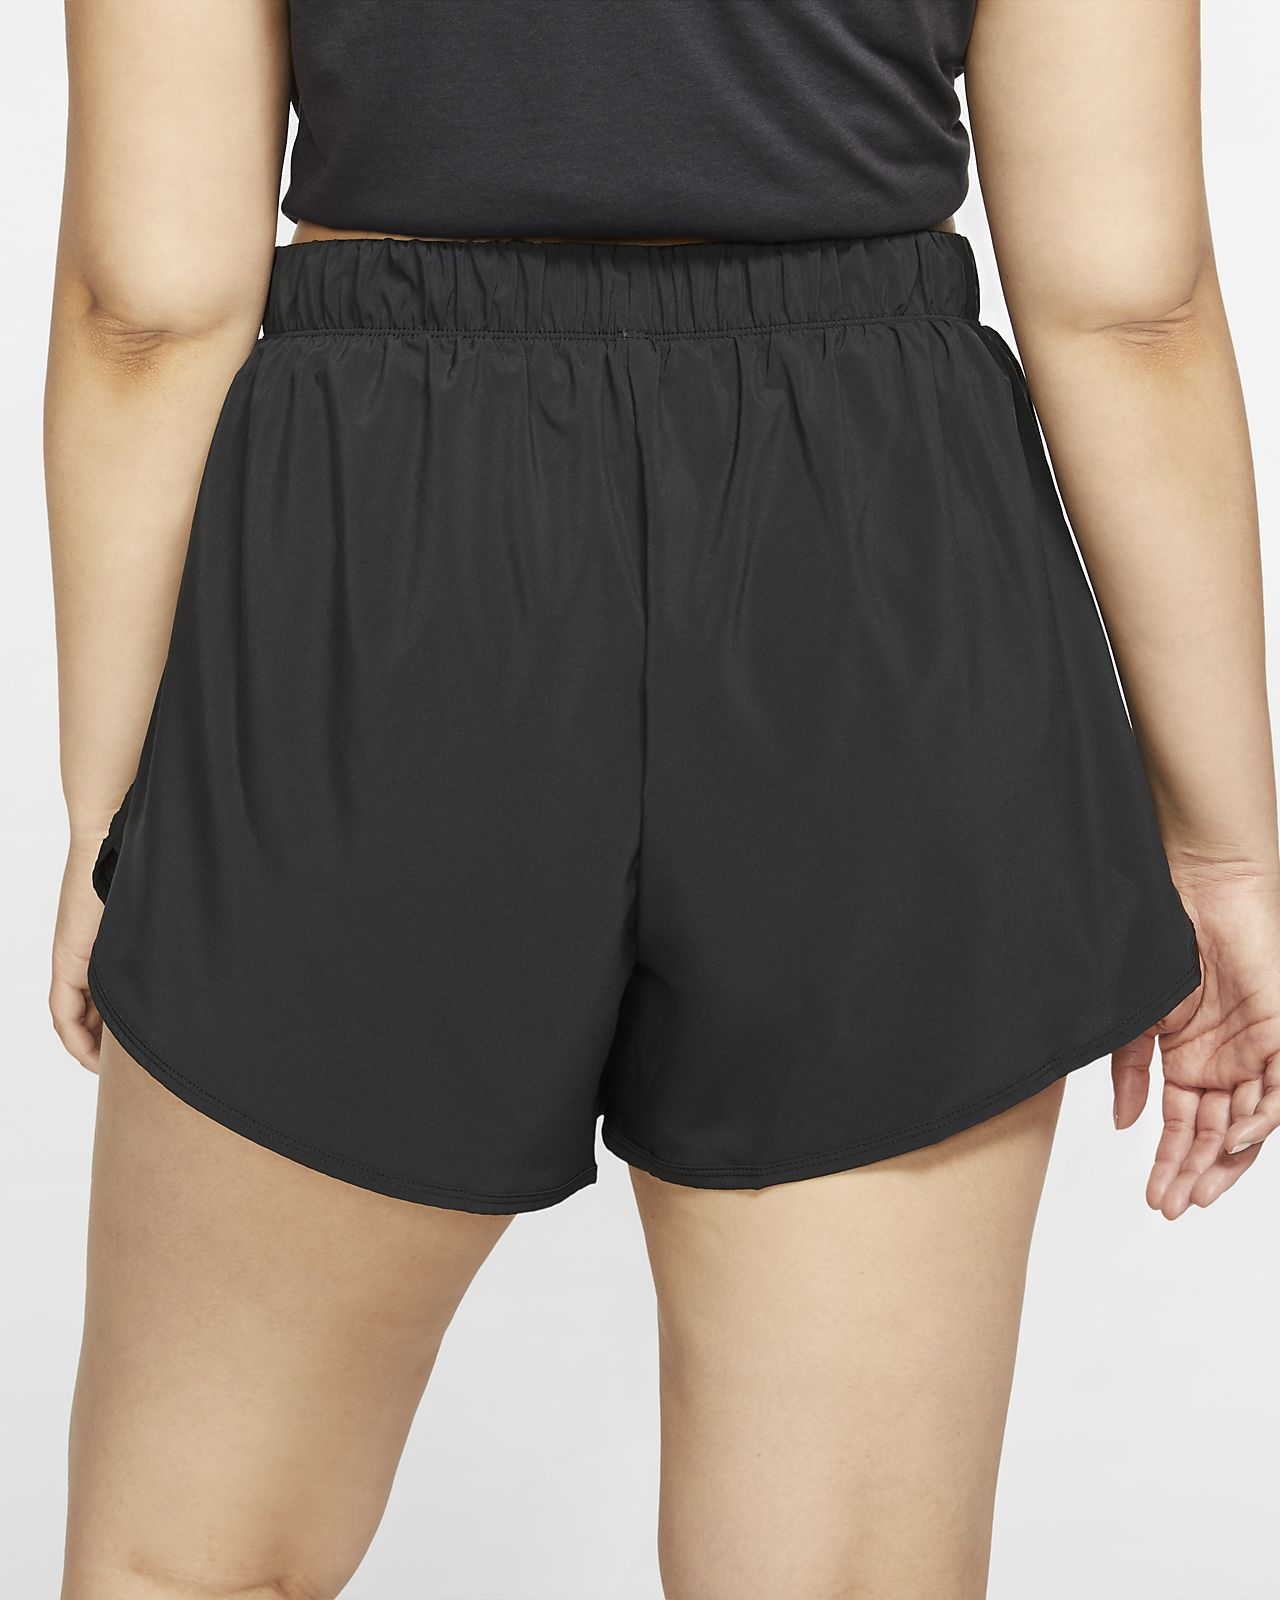 huge selection of e1be5 566a1 ... Nike Flex Women s 2-in-1 Training Shorts (Plus Size)